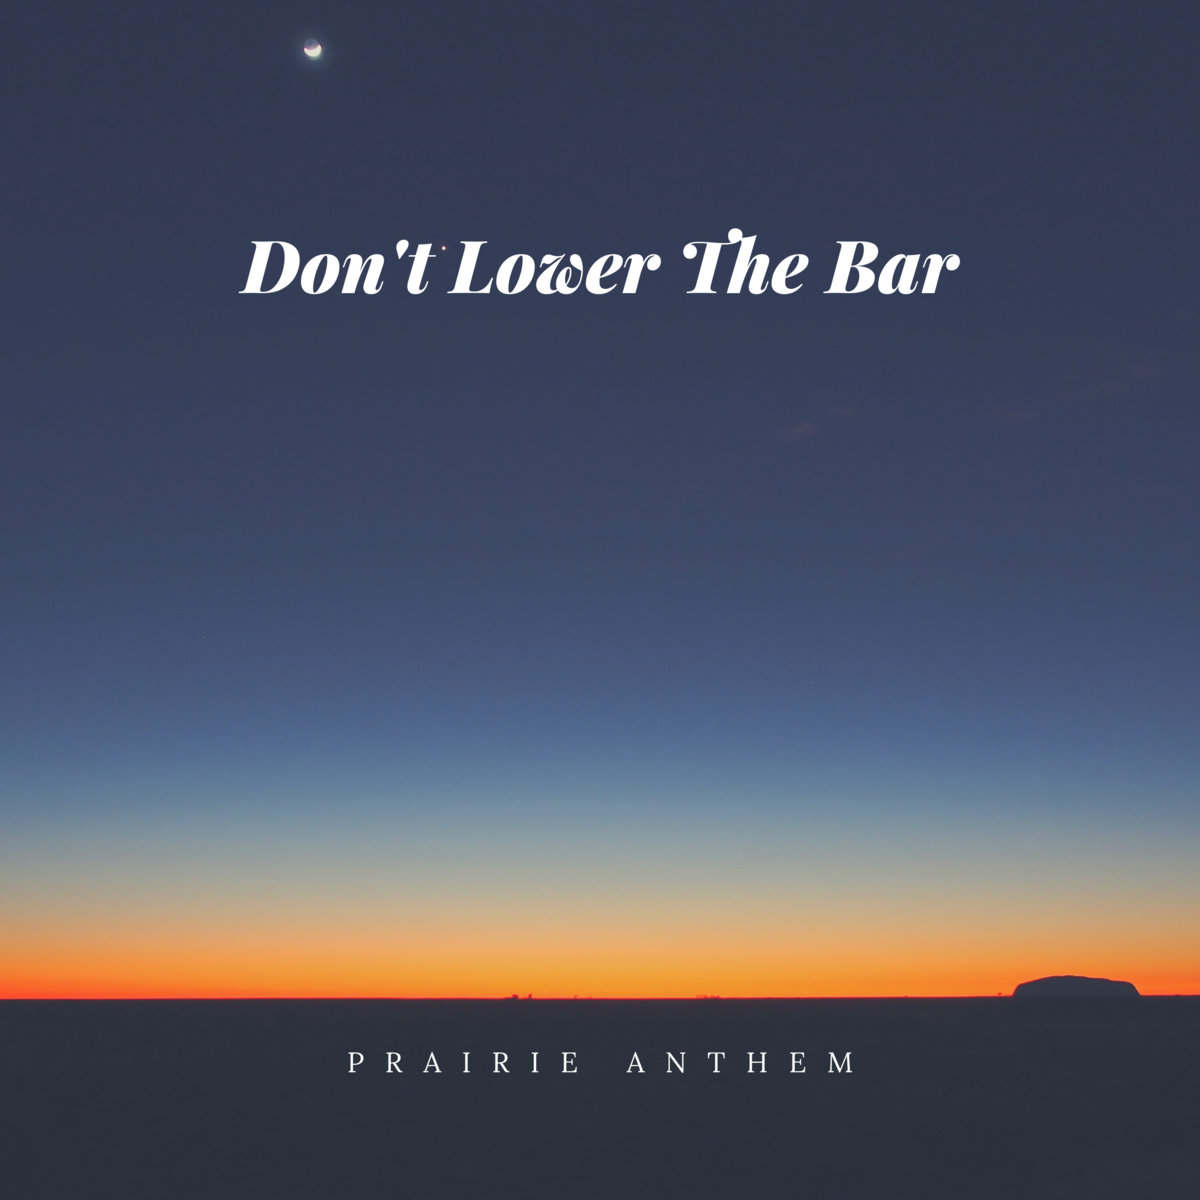 Don't Lower The Bar by Prairie Anthem